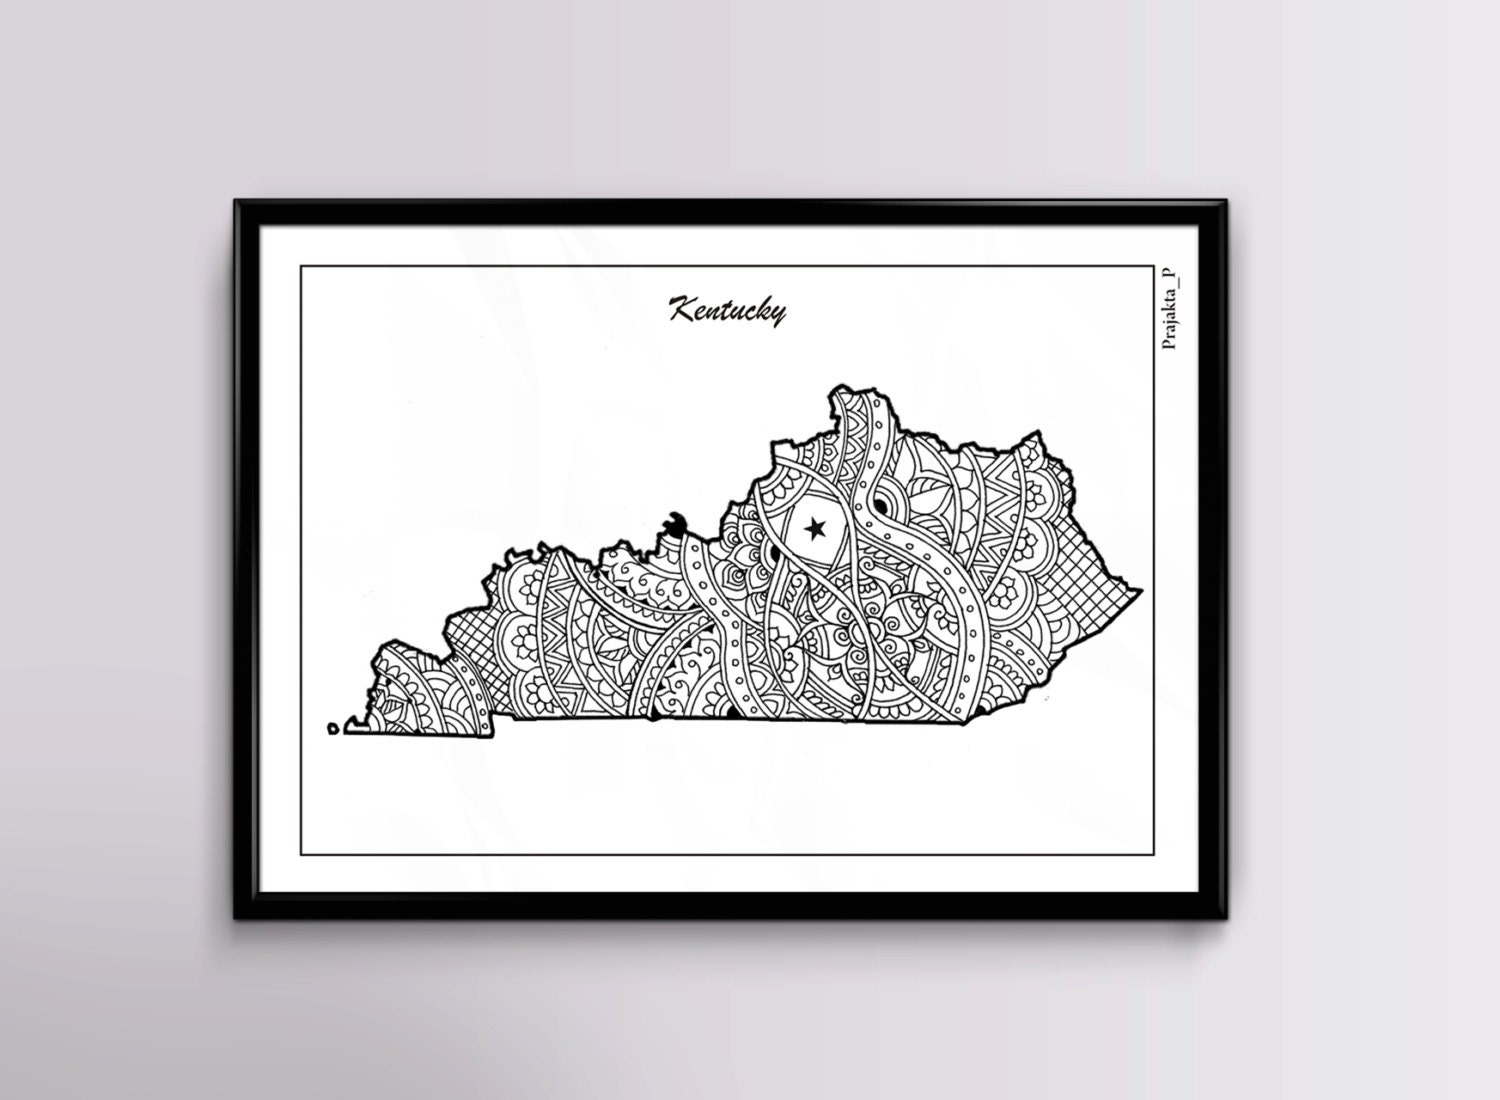 Kentucky map coloring page for adults, instant download colouring in, on kentucky state map showing counties, kentucky state bird coloring page, kentucky state attractions map, kentucky state district map, kentucky state map usa, kentucky state map blank, kentucky state flower goldenrod, kentucky state map of ky, kentucky map outline, kentucky state colors, kentucky state black and white, kentucky state shape, kentucky state map full page, kentucky state map by county, kentucky state and county road map, kentucky state map with cities and rivers, kentucky state flag, kentucky state clip art,